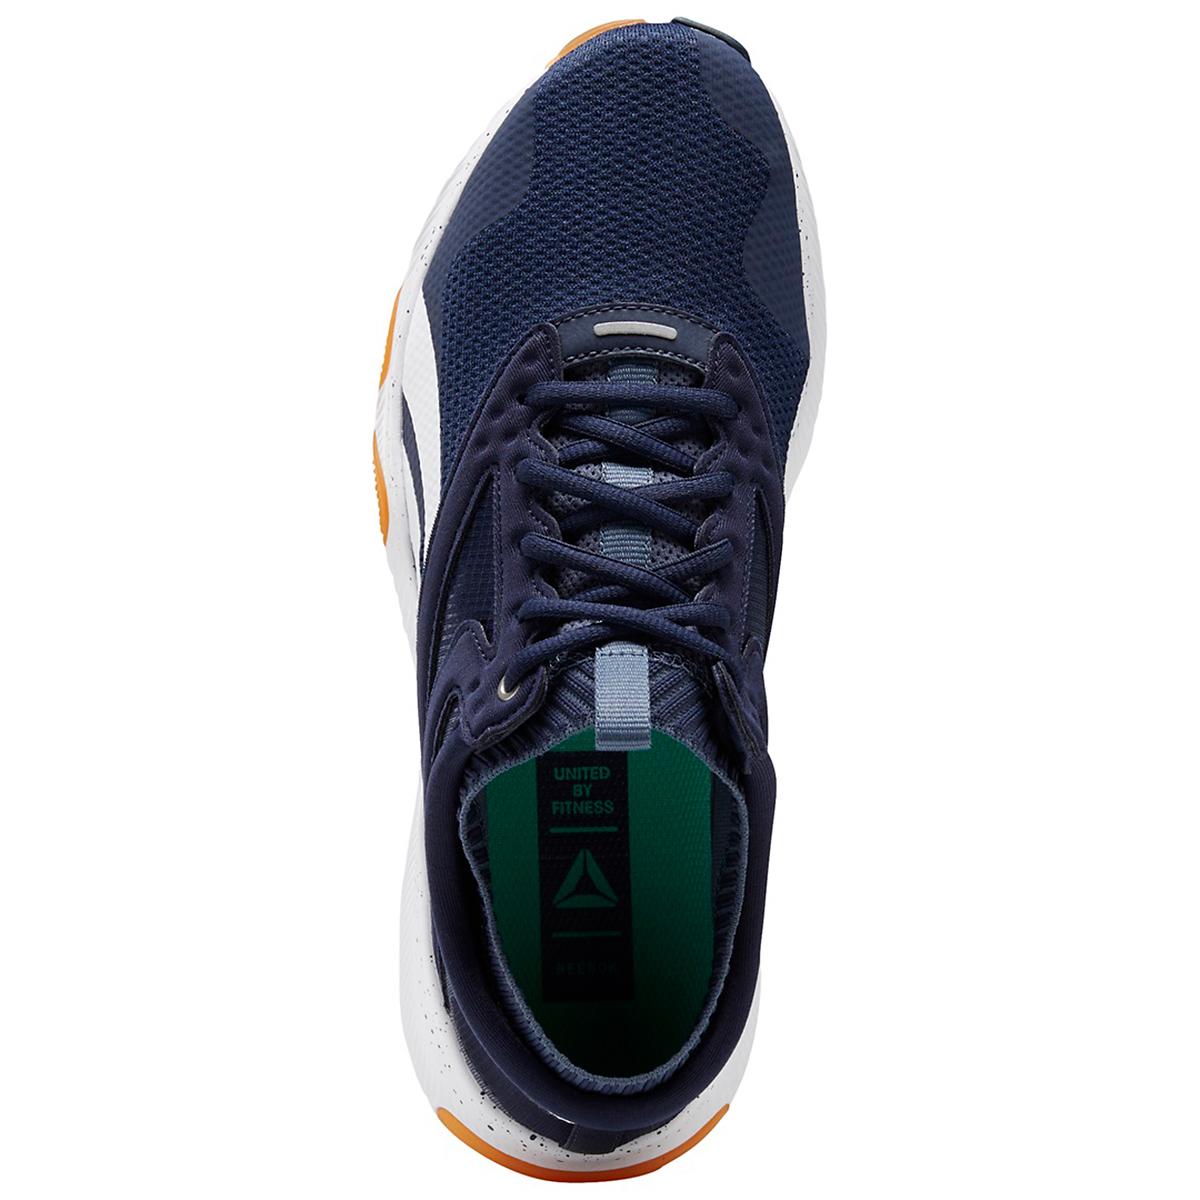 Men's Reebok HIIT Running Shoe - Color: Vector Navy/White - Size: 6 - Width: Regular, Vector Navy/White, large, image 3